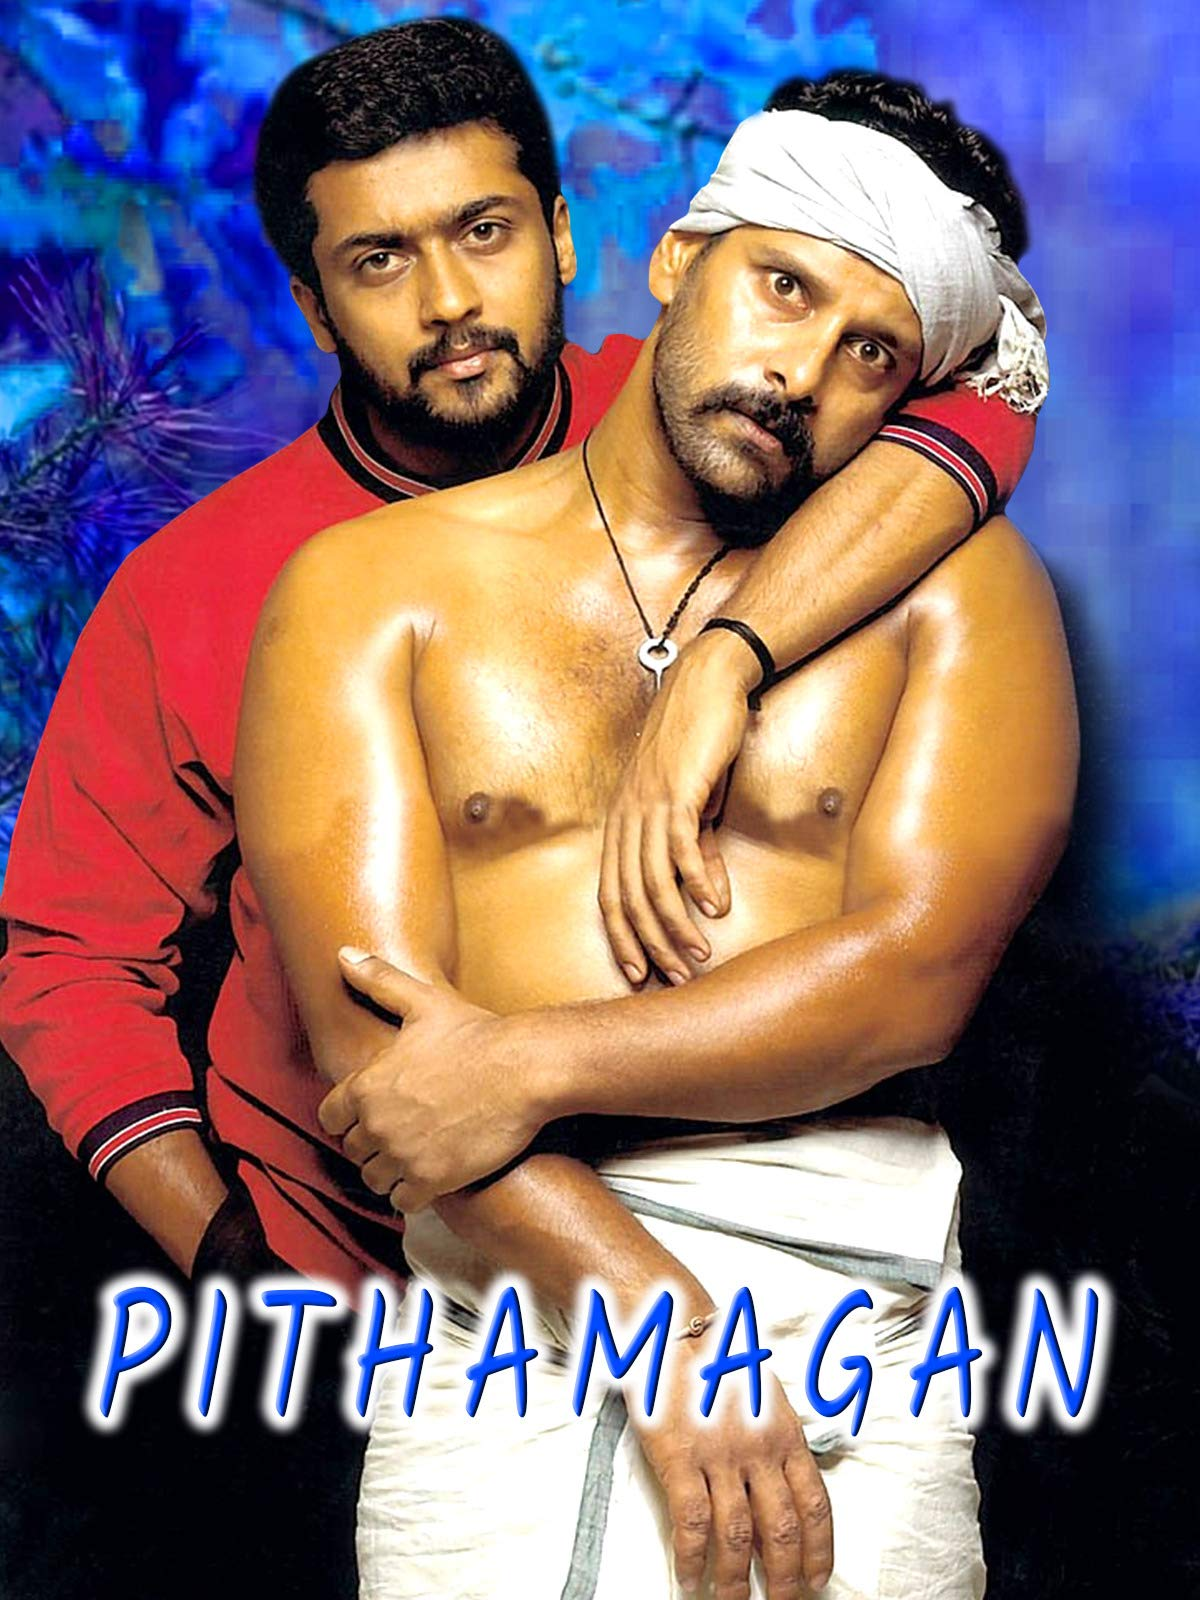 Pithamagan 2020 Hindi Dubbed 720p HDRip 930MB Download